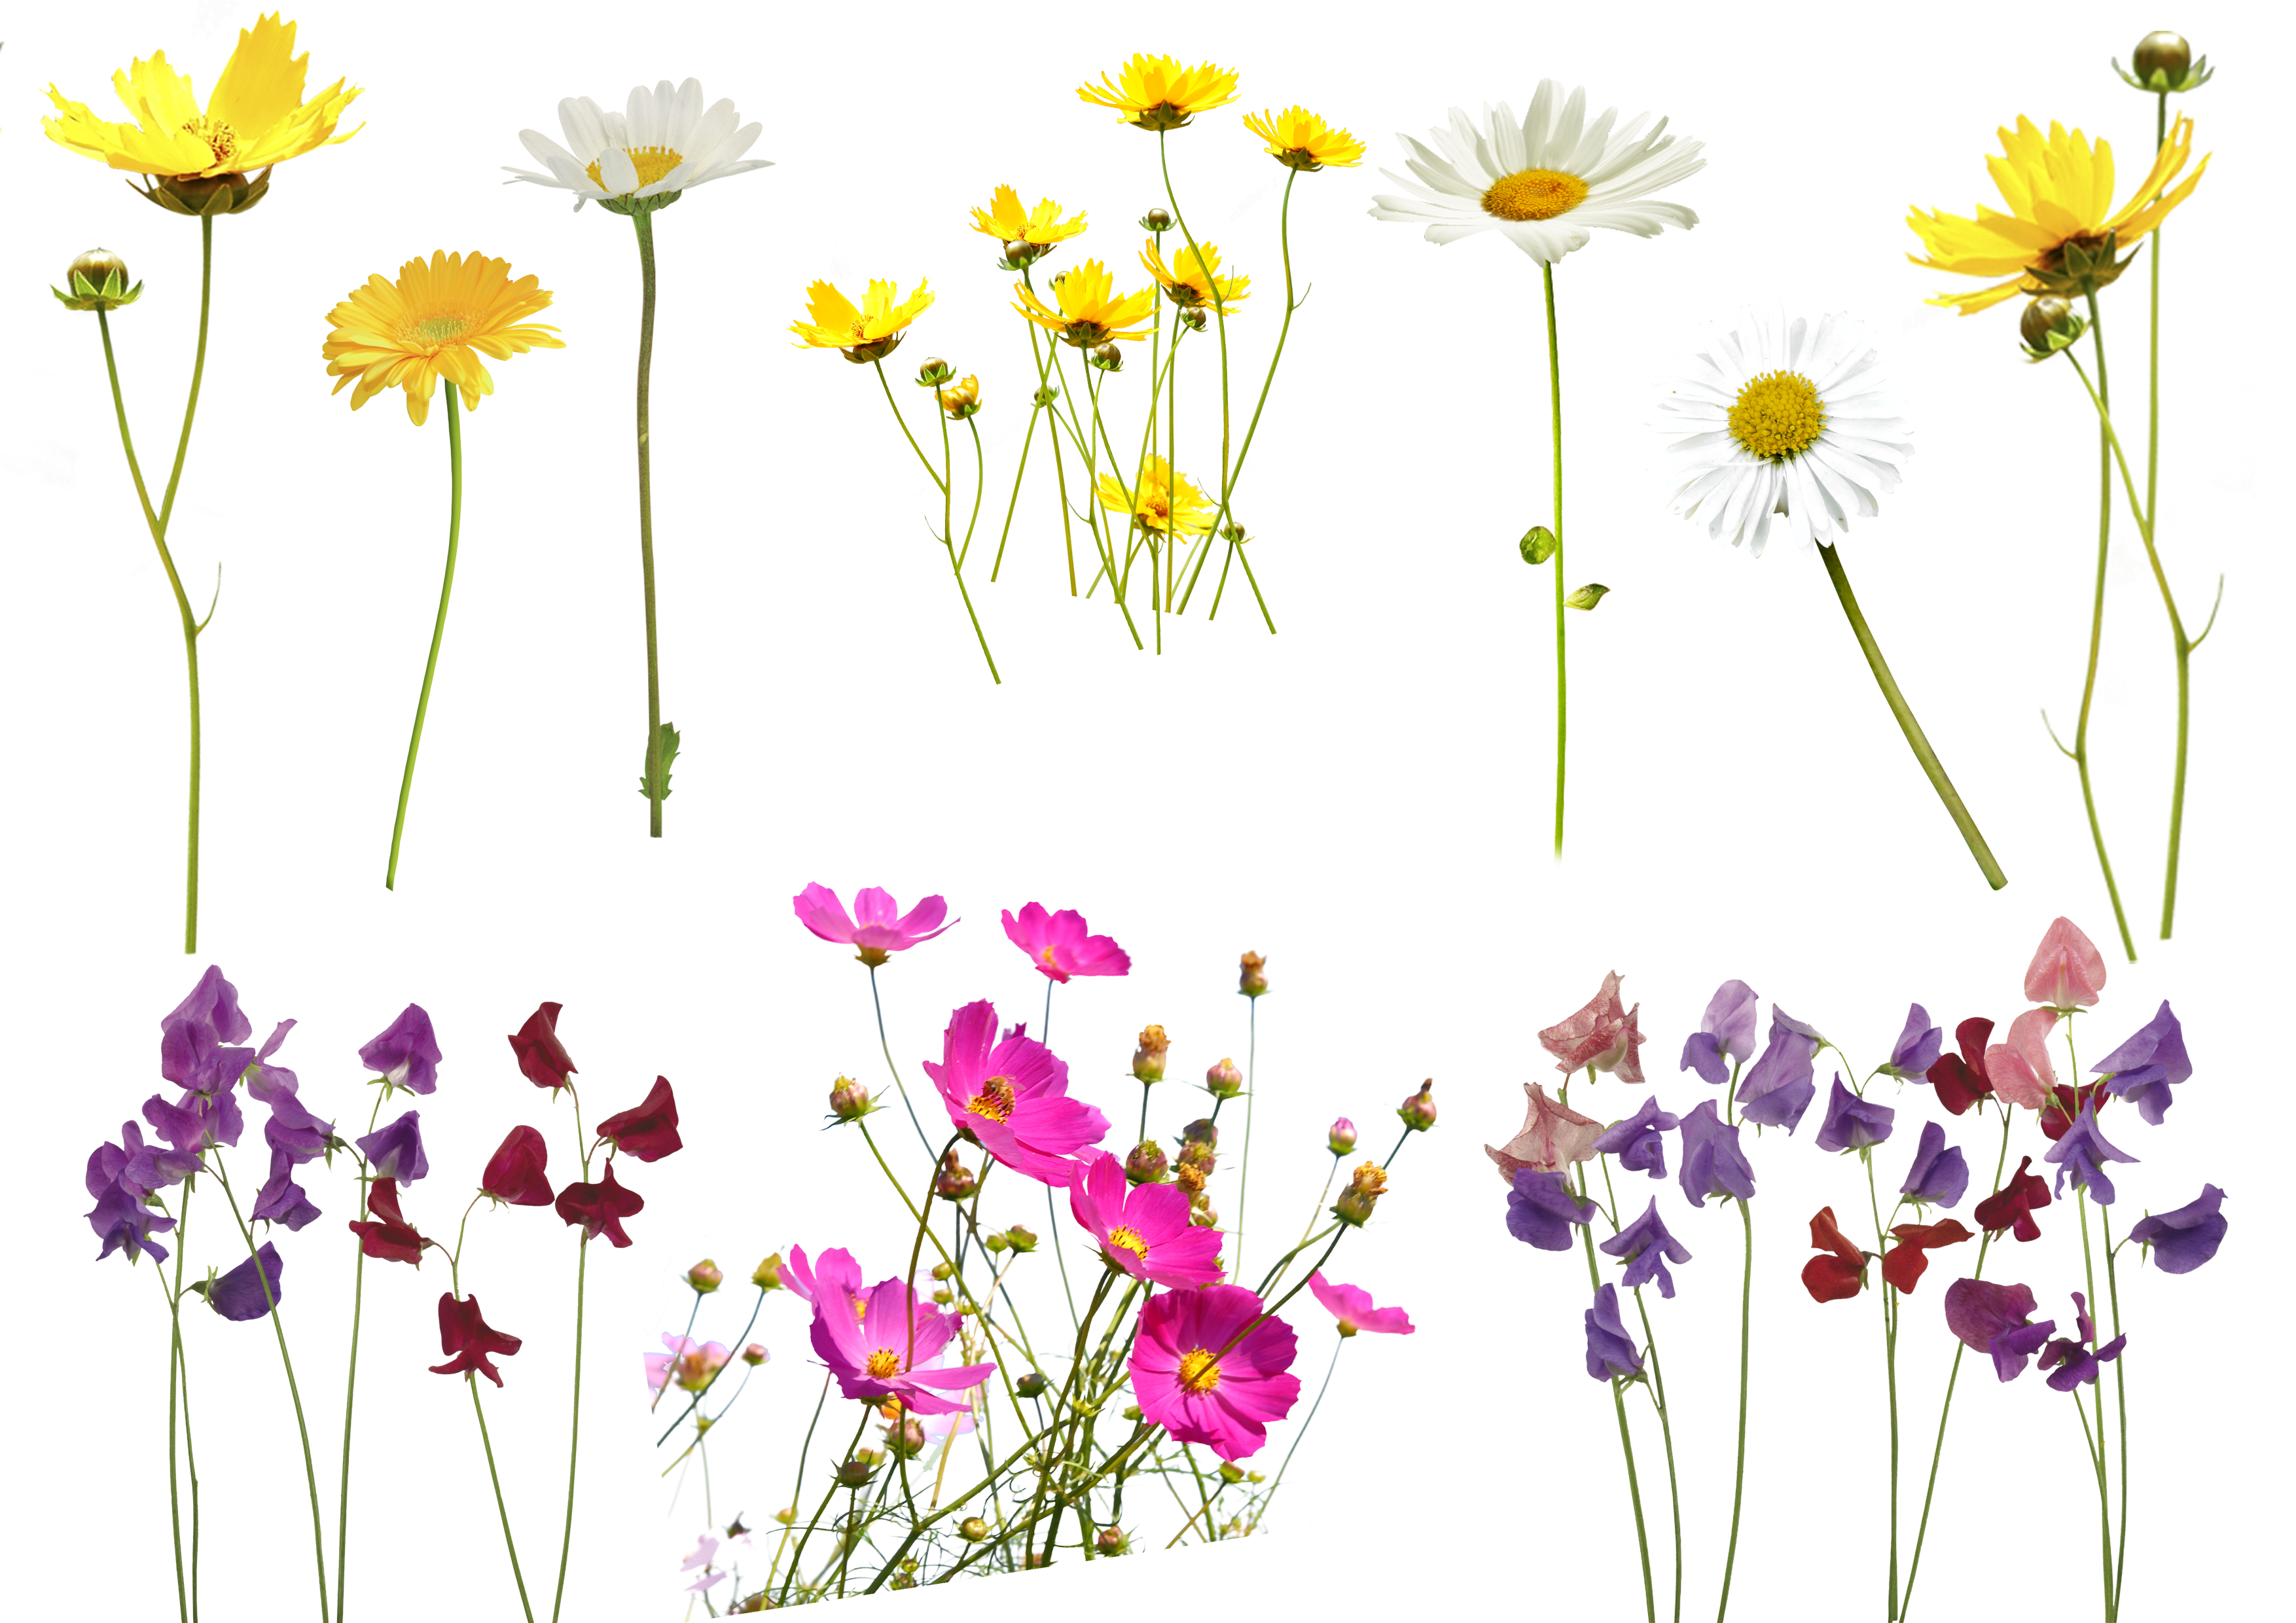 Blowing glitter png. Free flower photo overlay